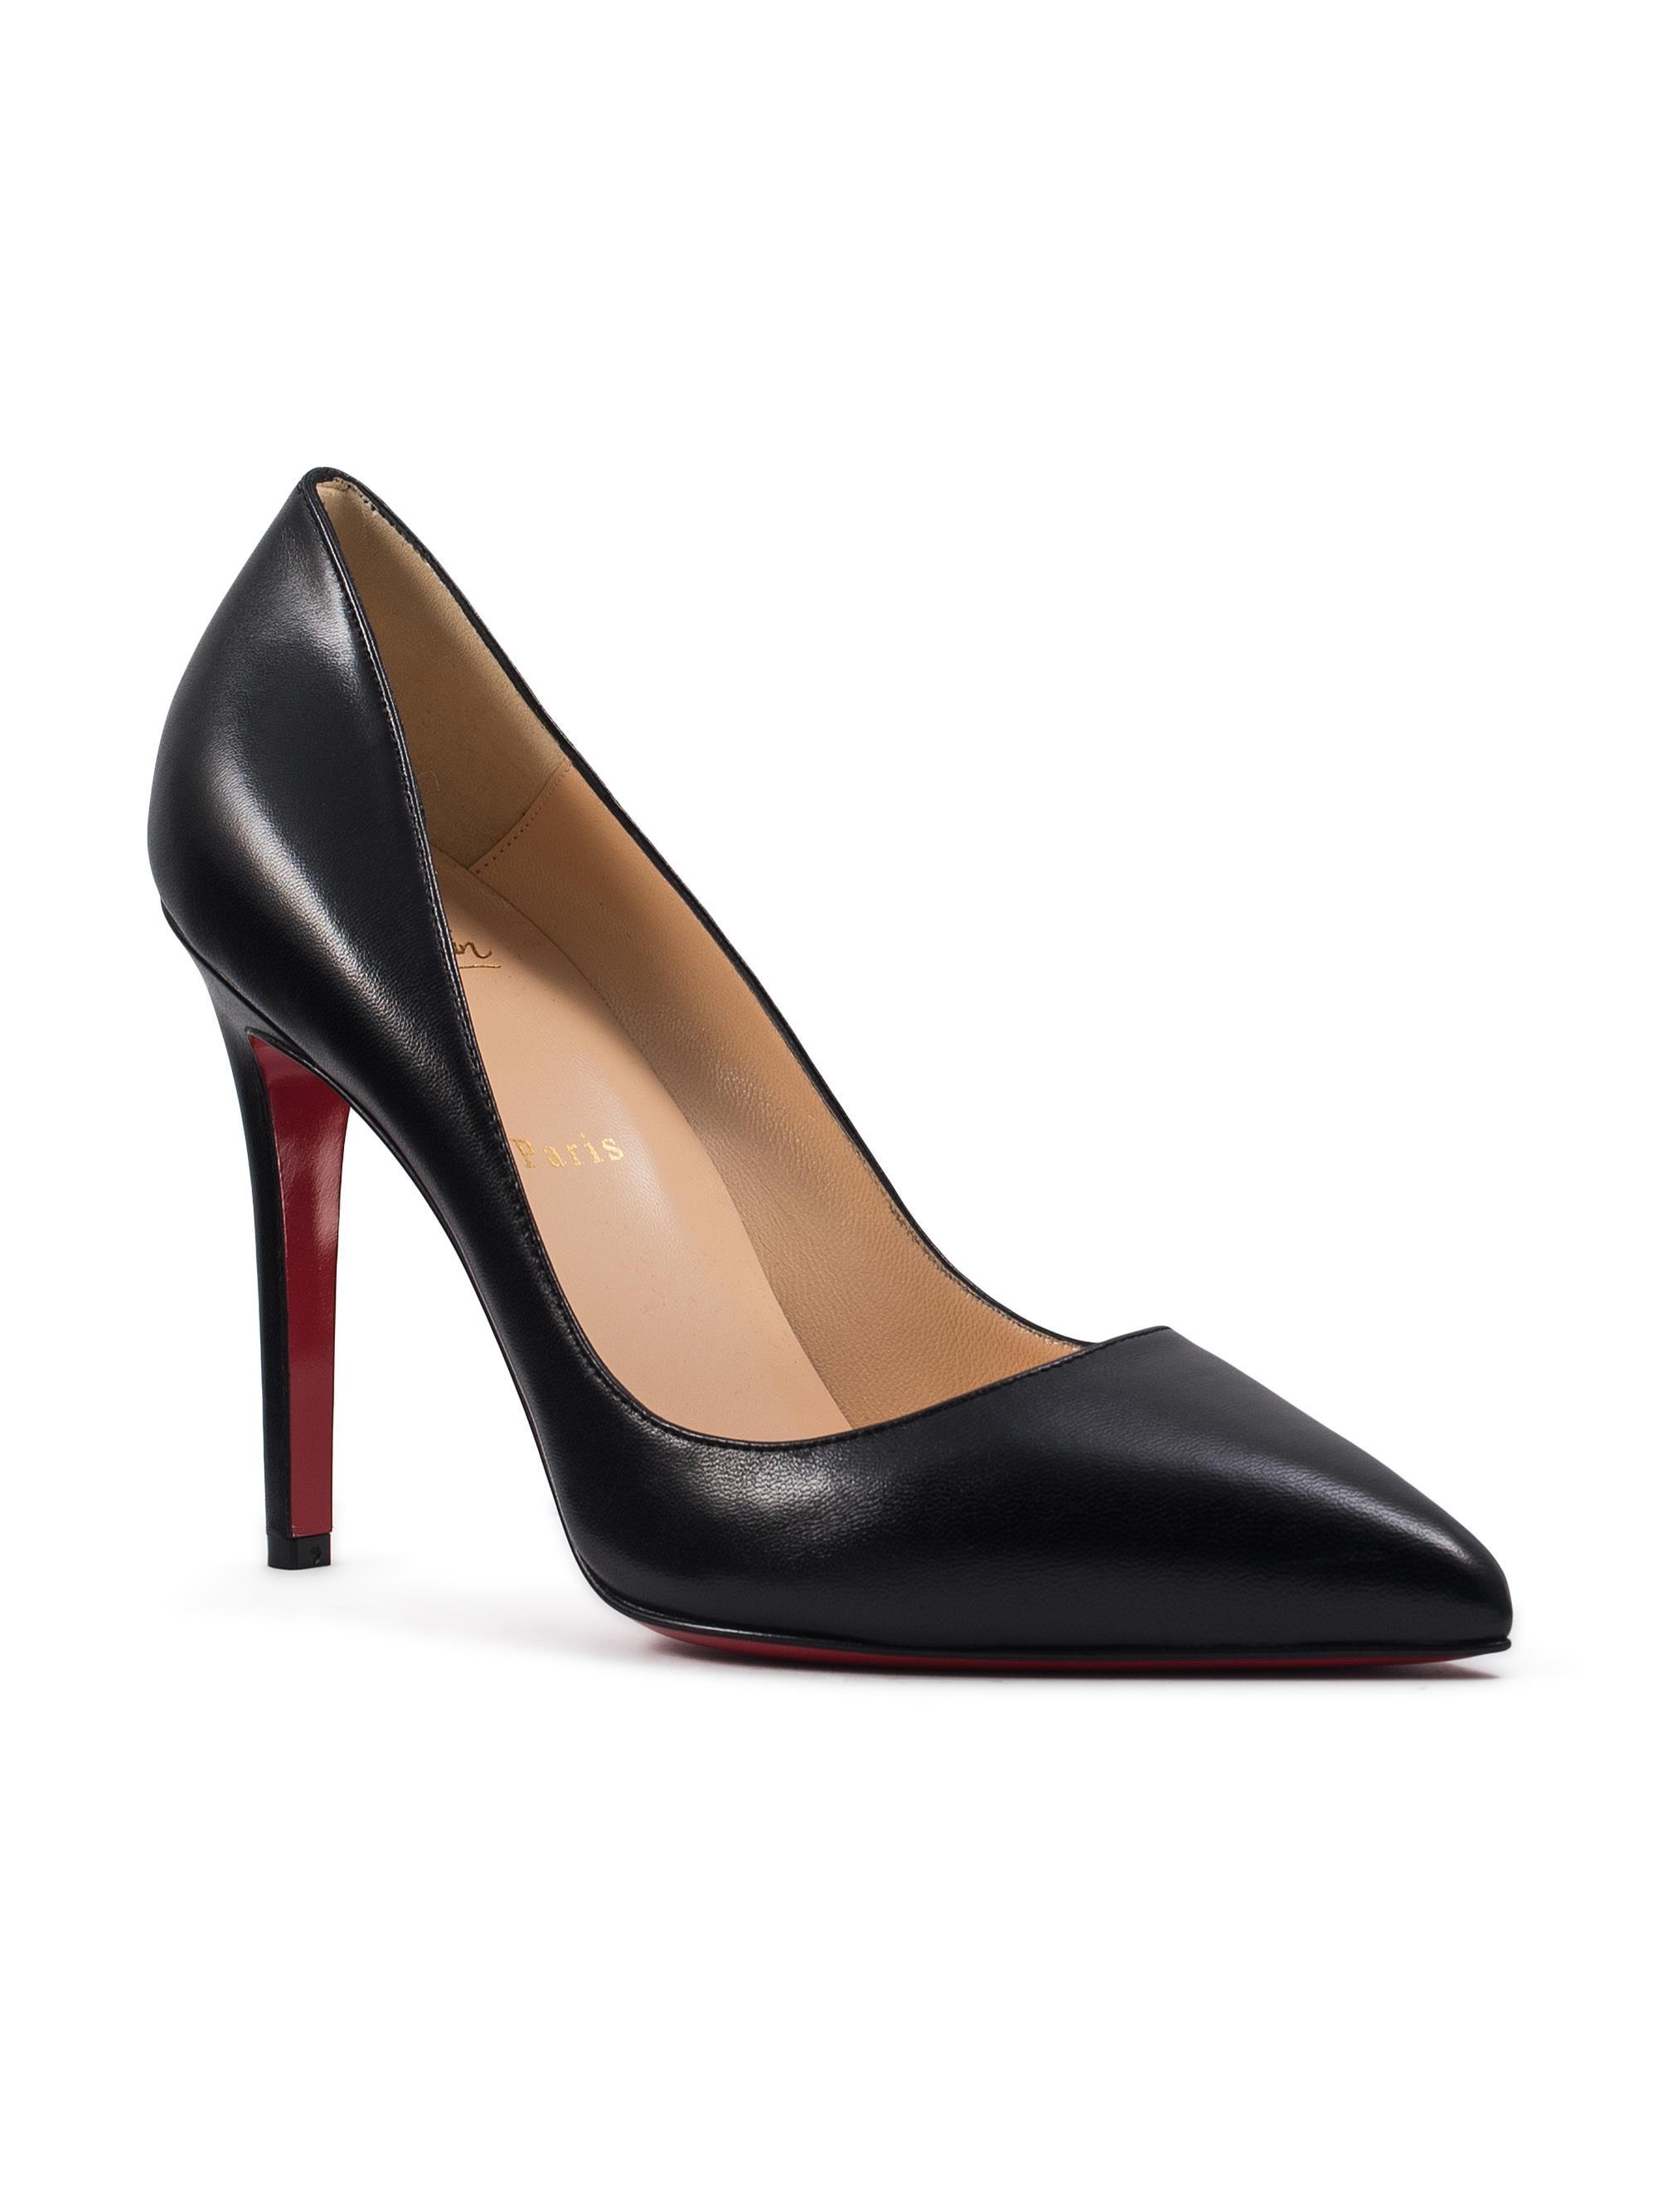 d803a04848eb Gallery. Previously sold at  GENTE Roma · Women s Christian Louboutin  Pigalle ...